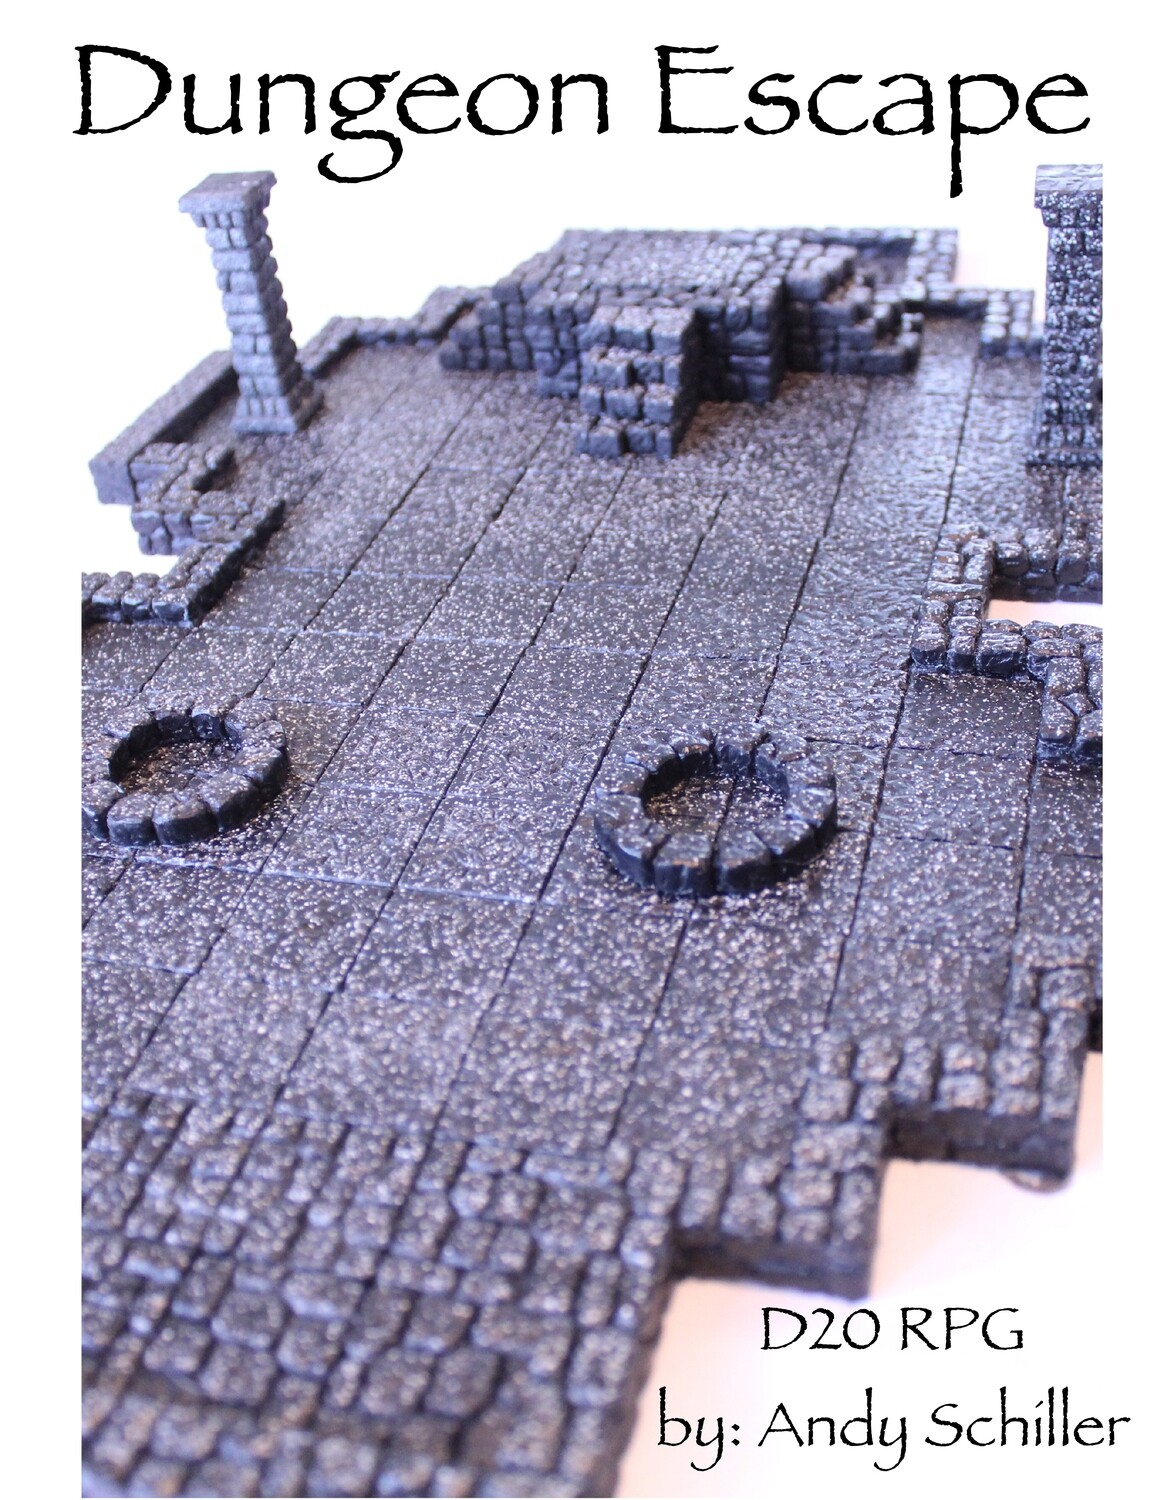 Dungeon Escape, the Board Game